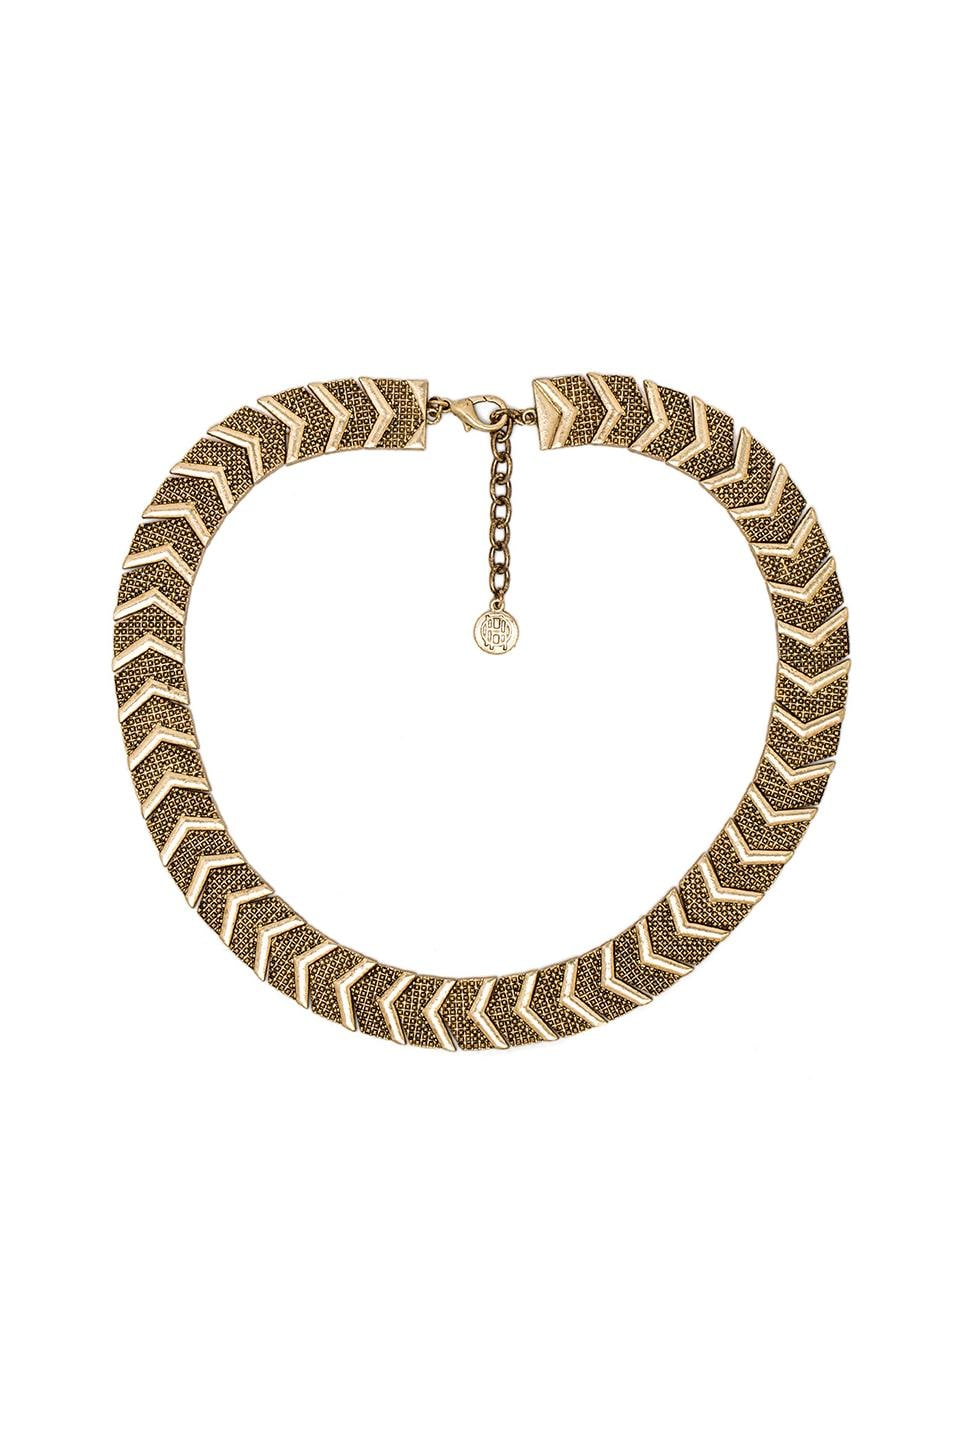 House of Harlow 1960 House of Harlow Sidewinding Collar Necklace in Gold